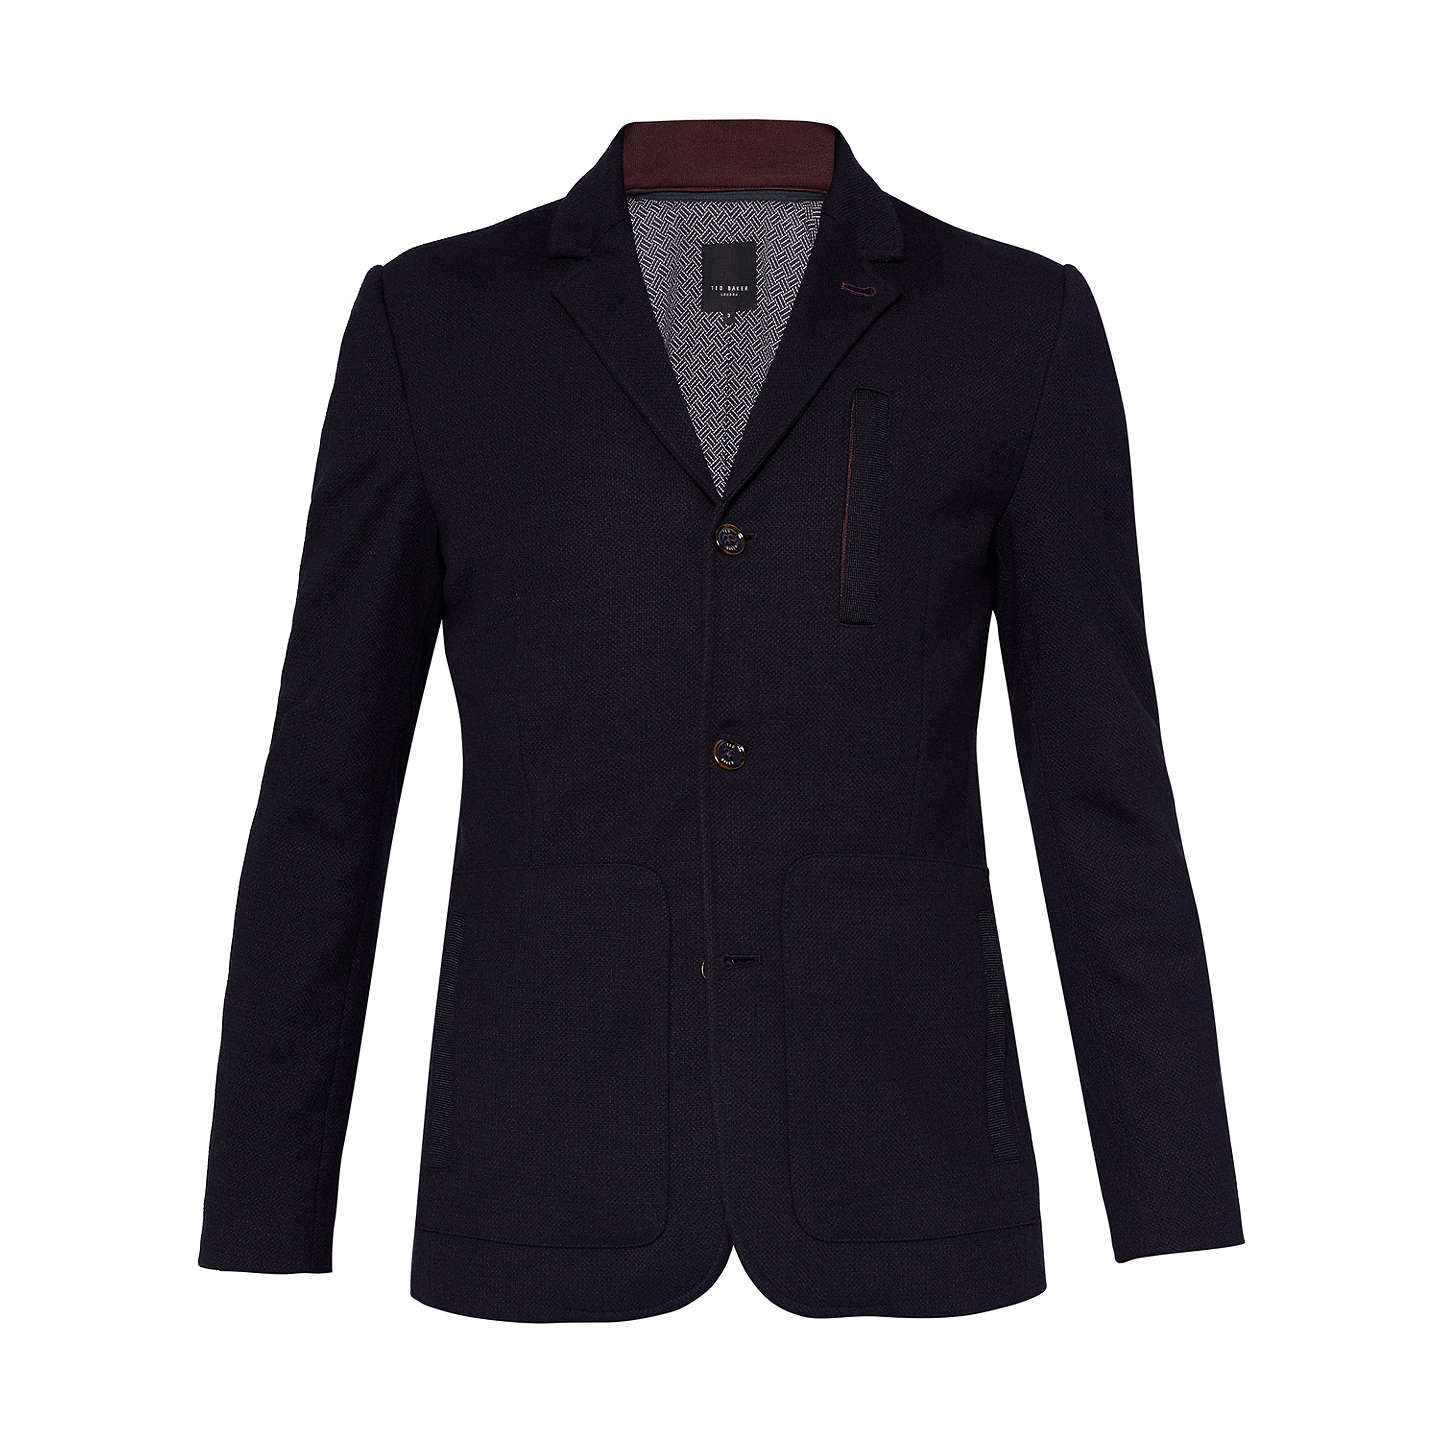 BuyTed Baker Roy Jersey Jacket, Navy, 2 Online at johnlewis.com